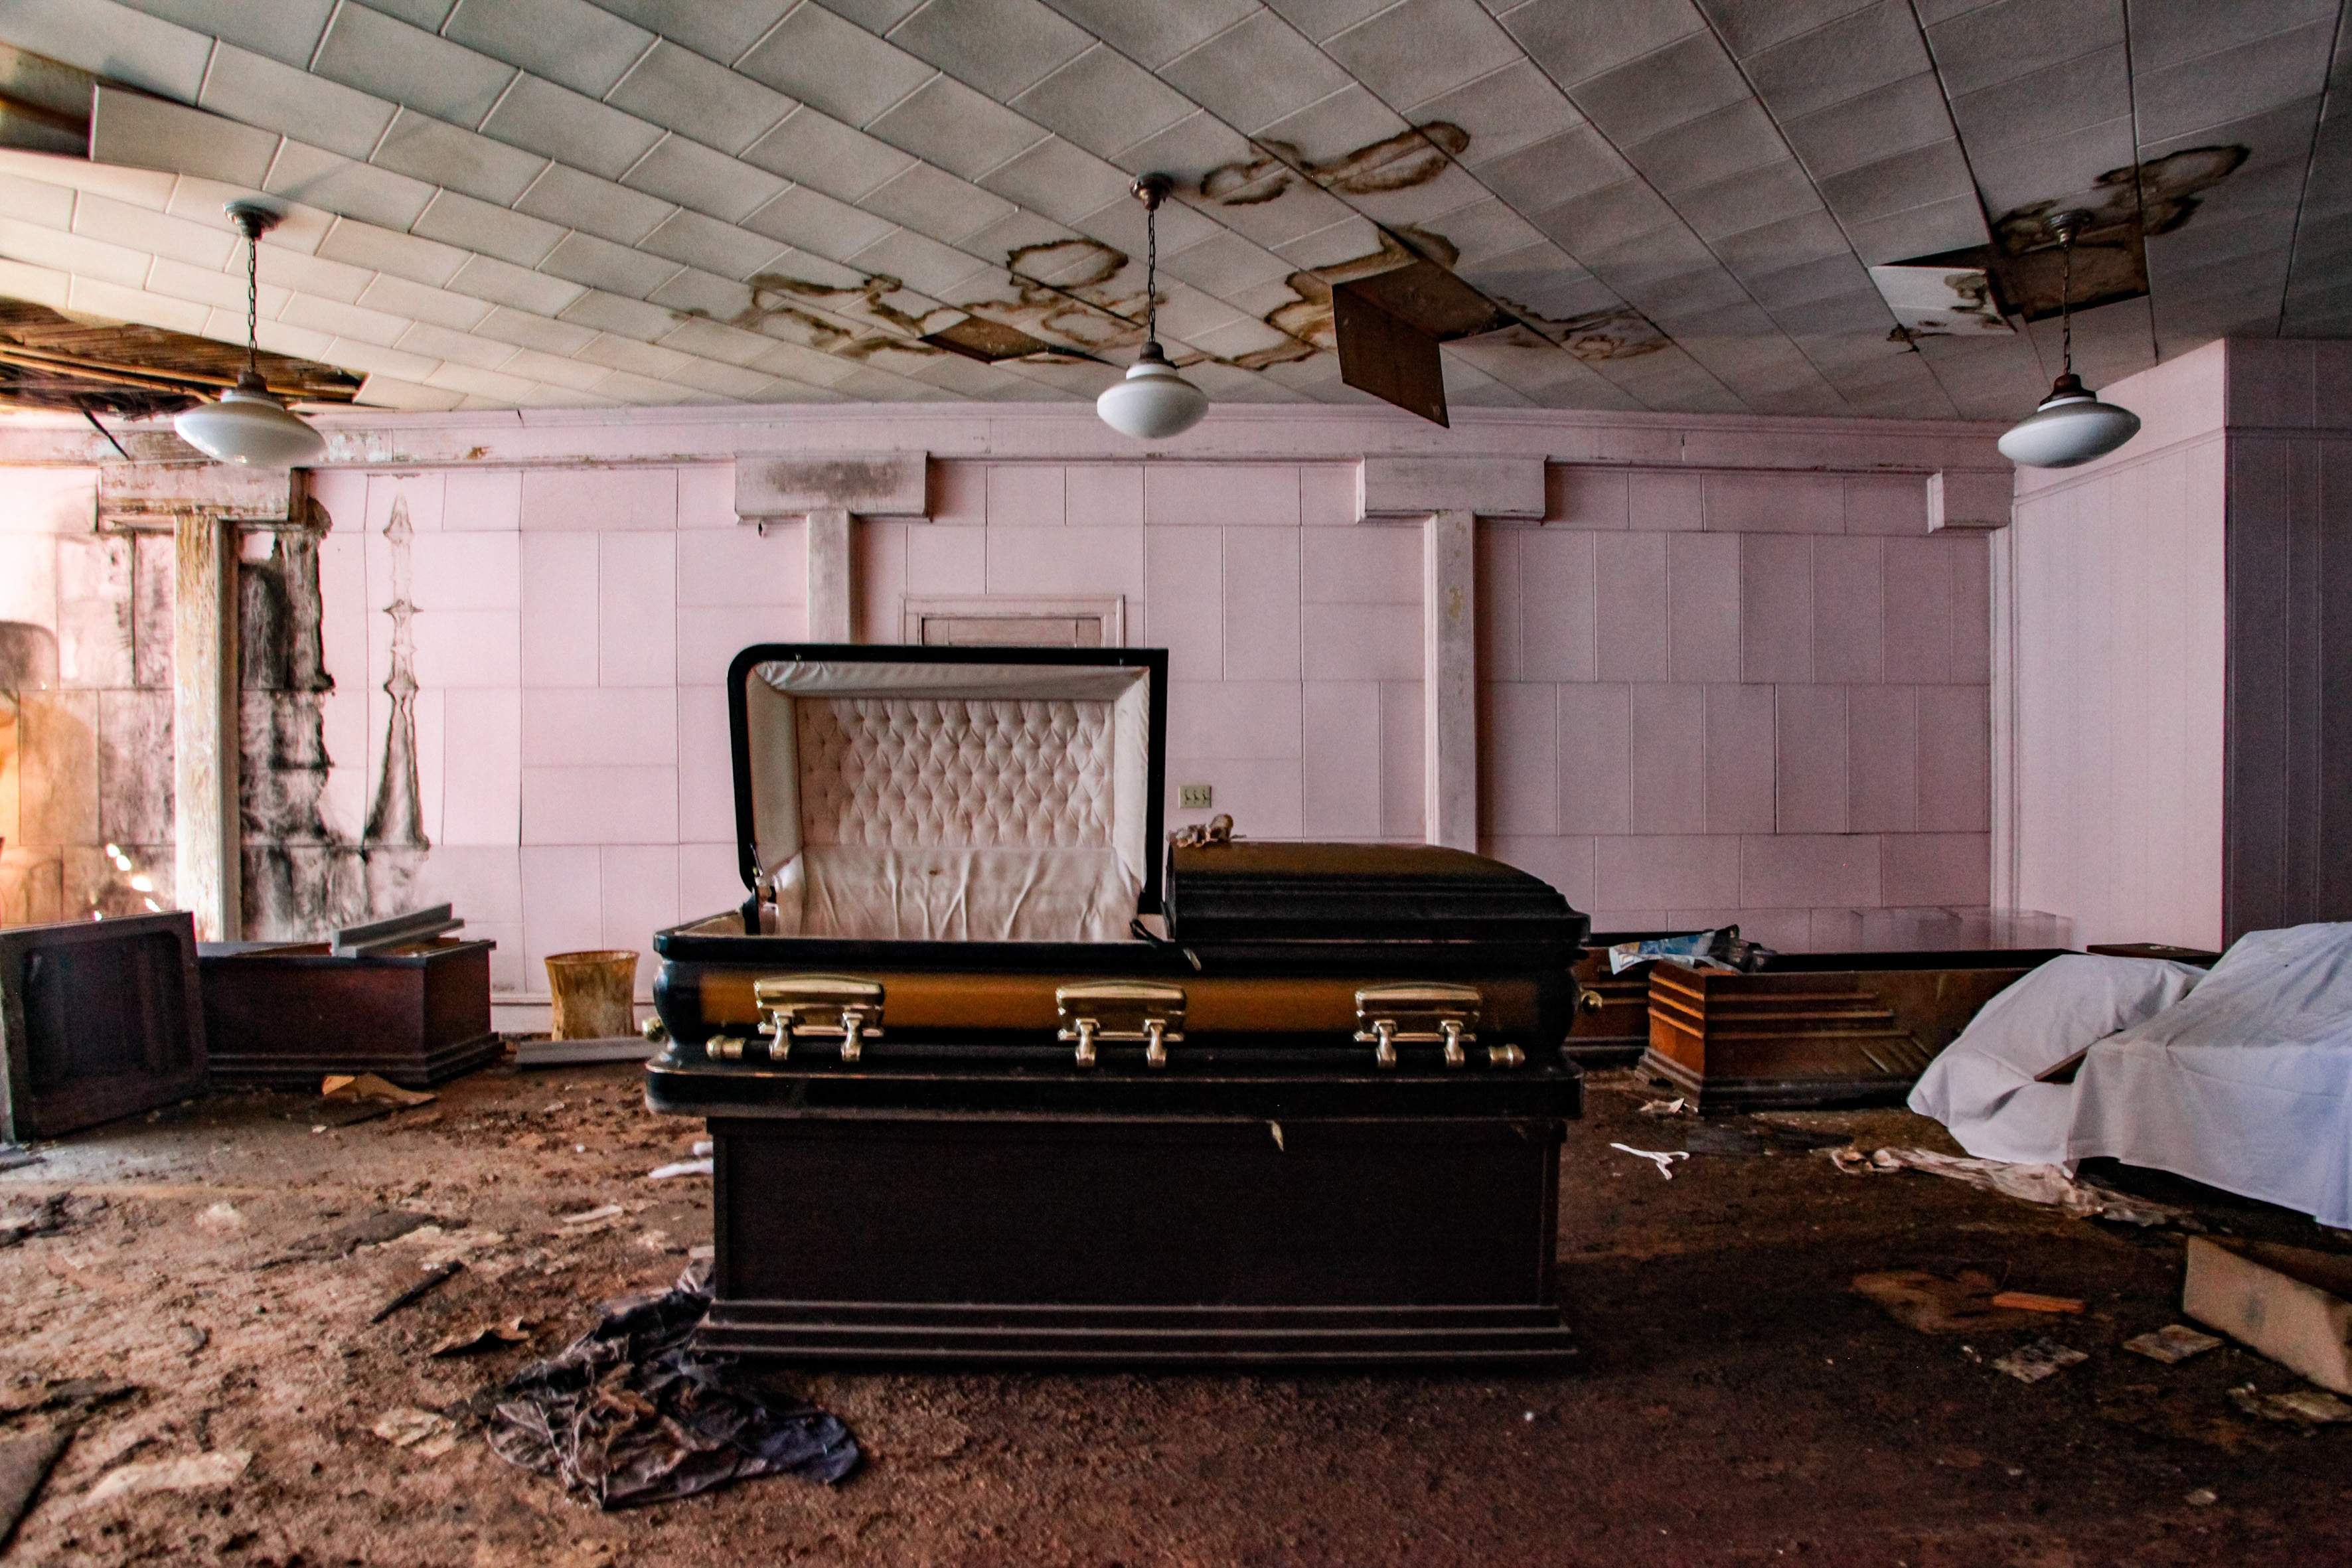 Death trap abandoned funeral home that's over 150-years-old